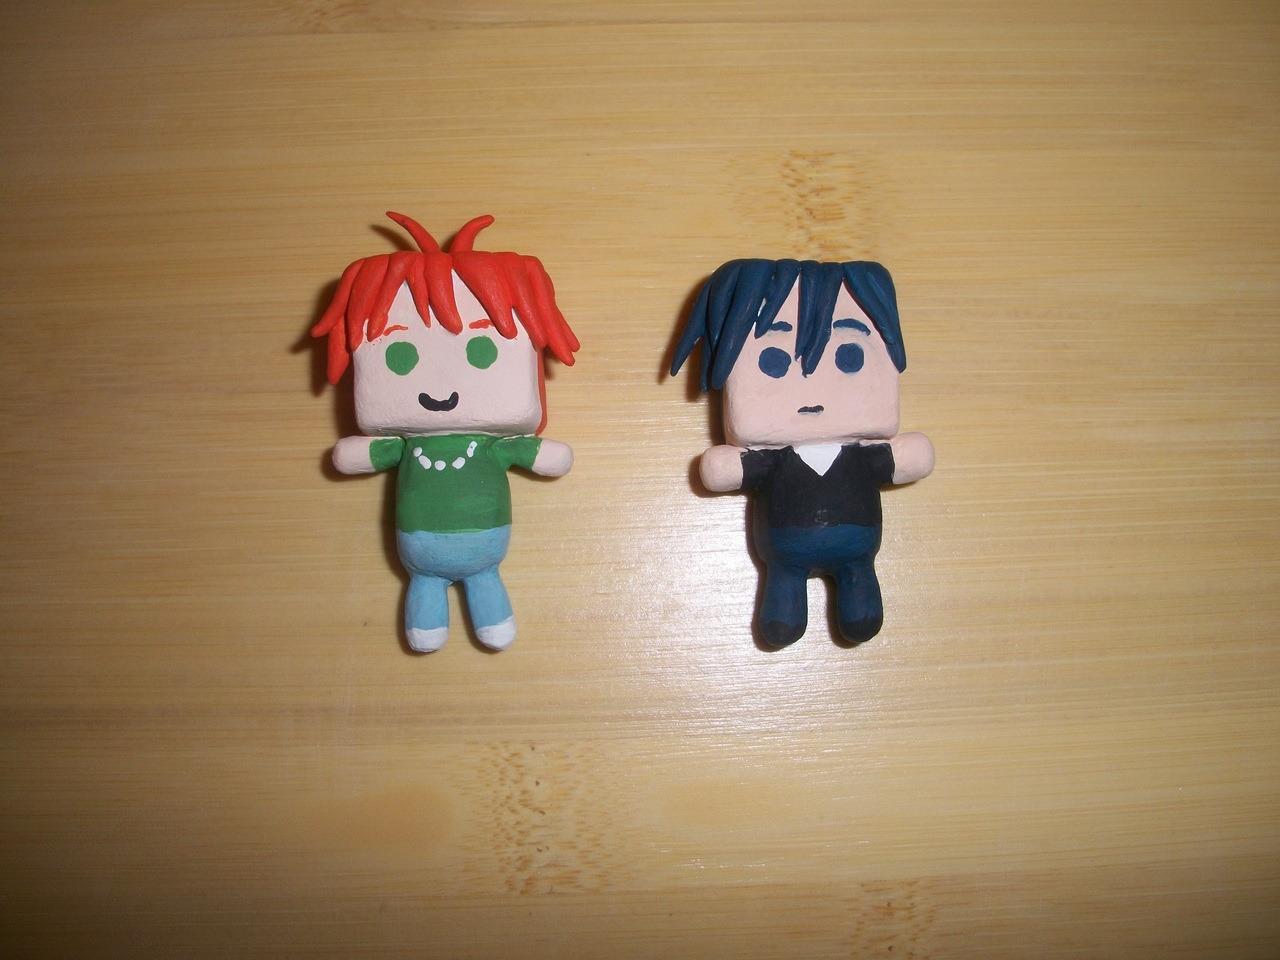 pumpkinninja:  Off*Beat chibi charms, first attempt third batch. (Colin: Second attempt.) I had original, when sketching out a plan for the charms, thought that Tory would be difficult to make. Turns out Colin was the hardest. My first attempt was a disaster and didn't look anything like him. I sure hope this one looks like him. I think it does…but then again, I'm looking at them threw rose colored glasses! CX Tory- Height: 2 inches, Width: 1 inch. Colin- Height: 1 inch and a half, Width: 1 inch.  They were made from oven baked clay and painted with acrylic paint. Anyways, I was super excited to make these. Off*Beat is such a cute story. Tory and Colin are from Off*Beat, a graphic novel by Jen Lee Quick. You can visit her on her DA page: http://wulfmune.deviantart.com/ Or you can visit her and see her online comic here: http://witchsquarry.smackjeeves.com/  doh, they are so cute!!  thank you for showing off*beat some lovin'~